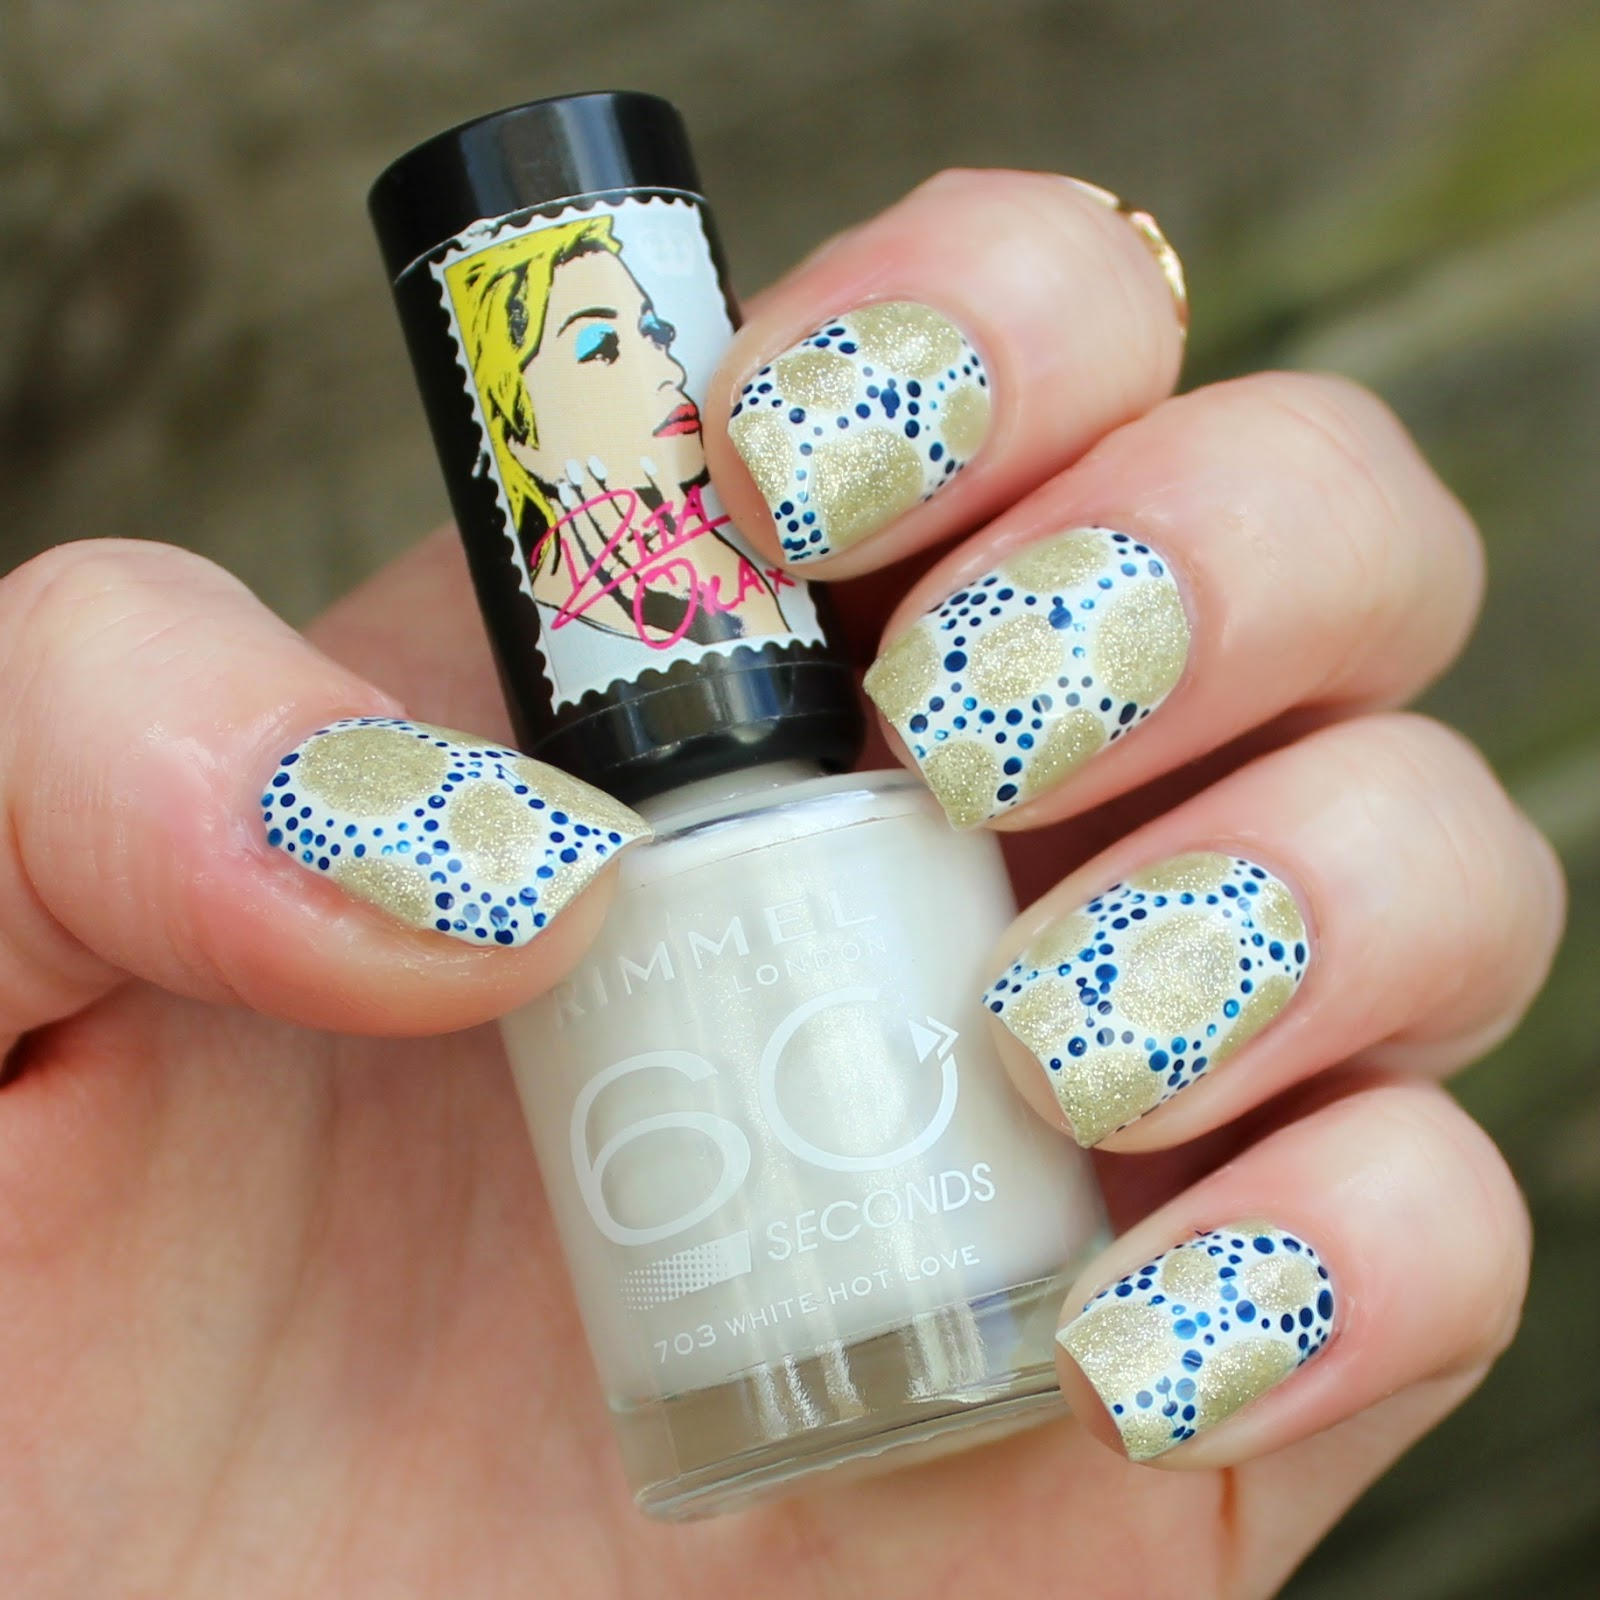 32 Gorgeous Nail Art Images Inspired By Summer Motifs: Dahlia Nails: Rebecca Atwood Inspired Nail Art